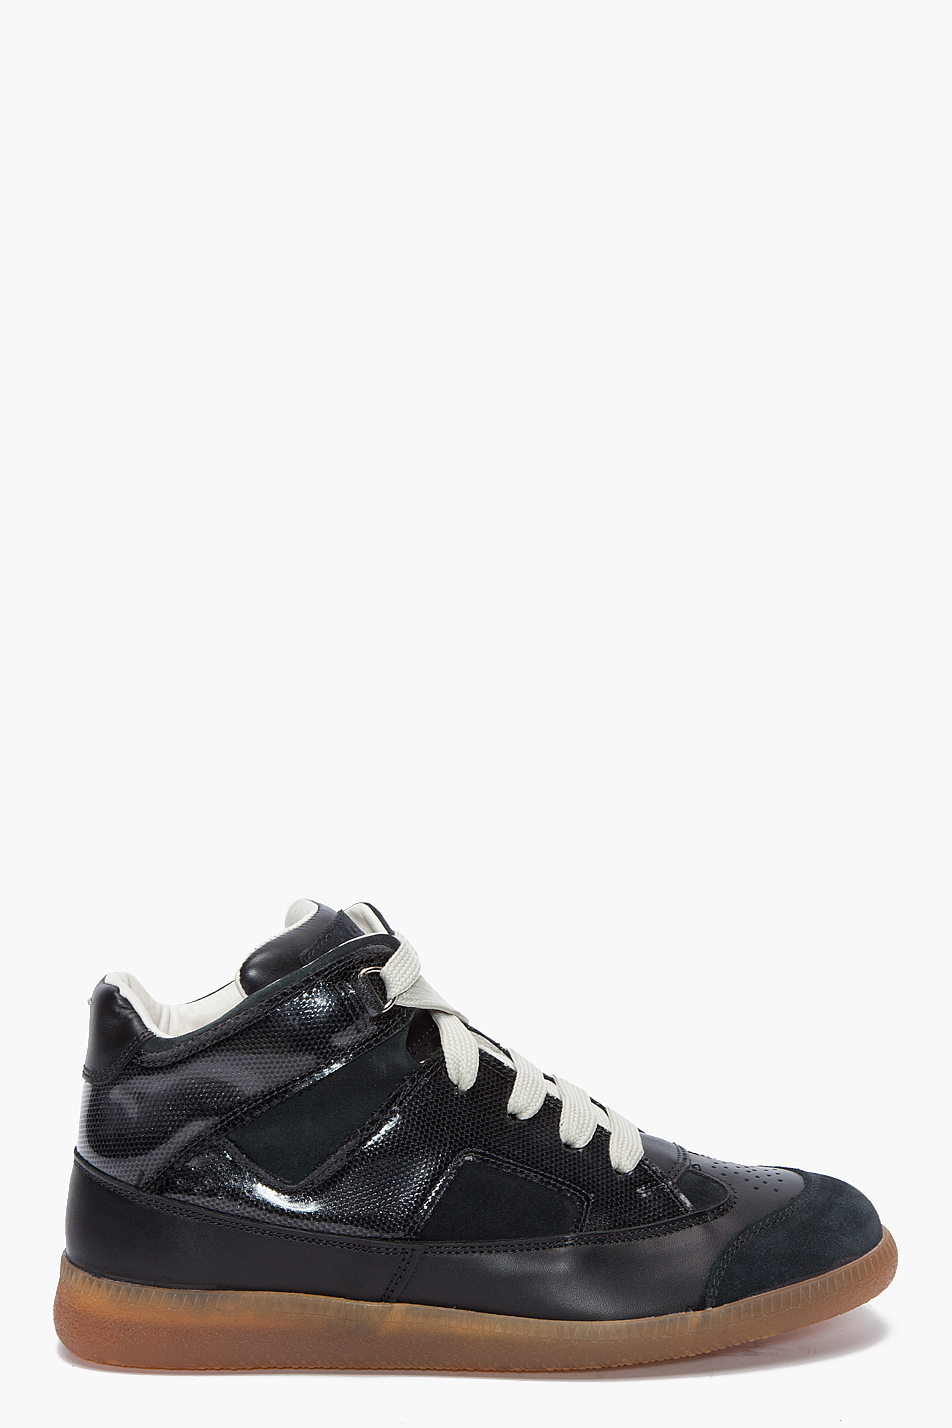 maison martin margiela mid top techno sneakers in black for men lyst. Black Bedroom Furniture Sets. Home Design Ideas